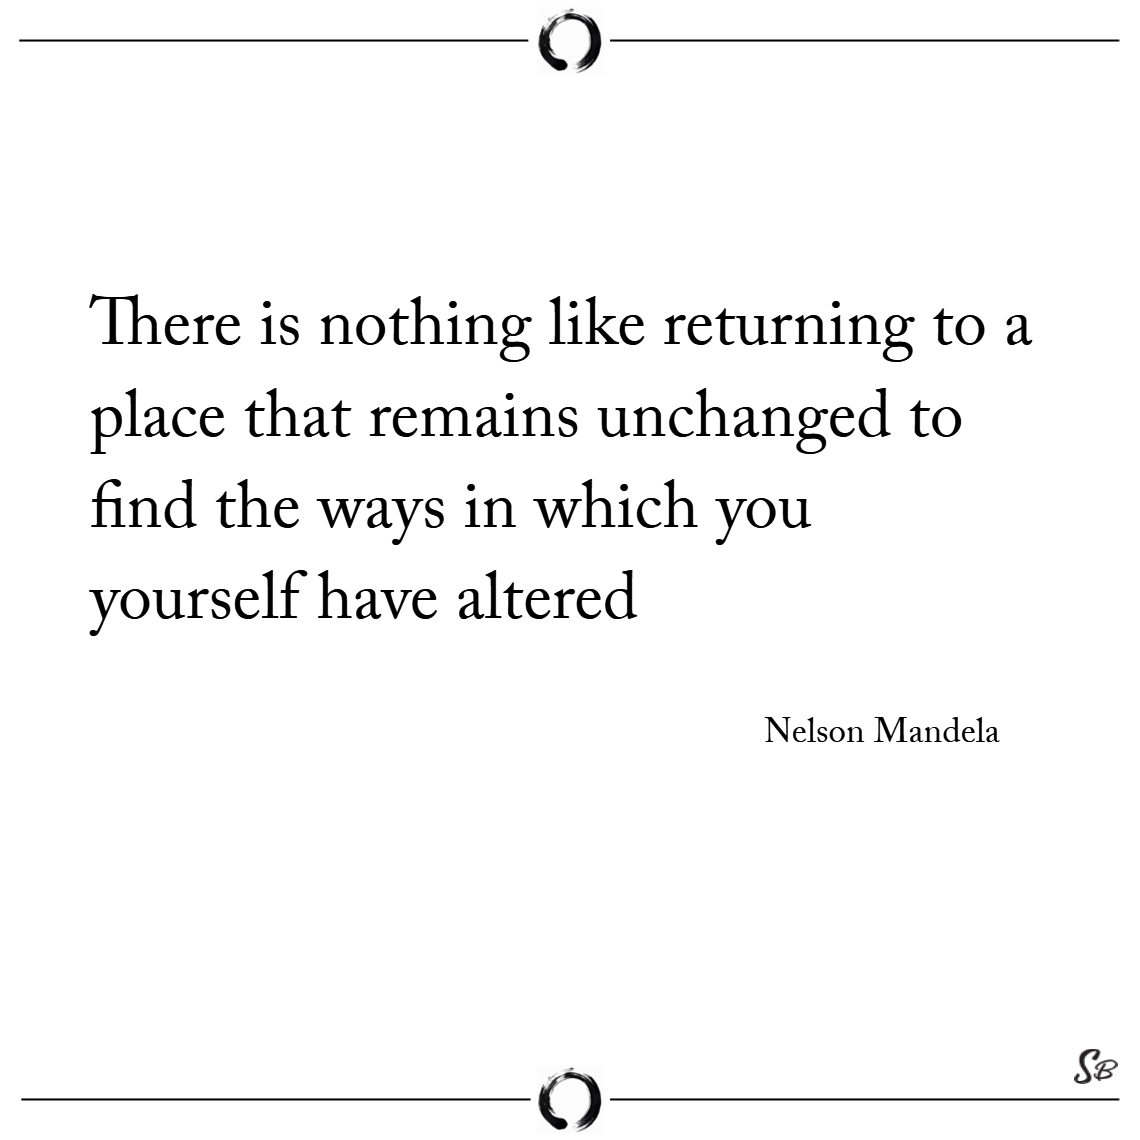 There is nothing like returning to a place that remains unchanged to find the ways in which you yourself have altered. – nelson mandela